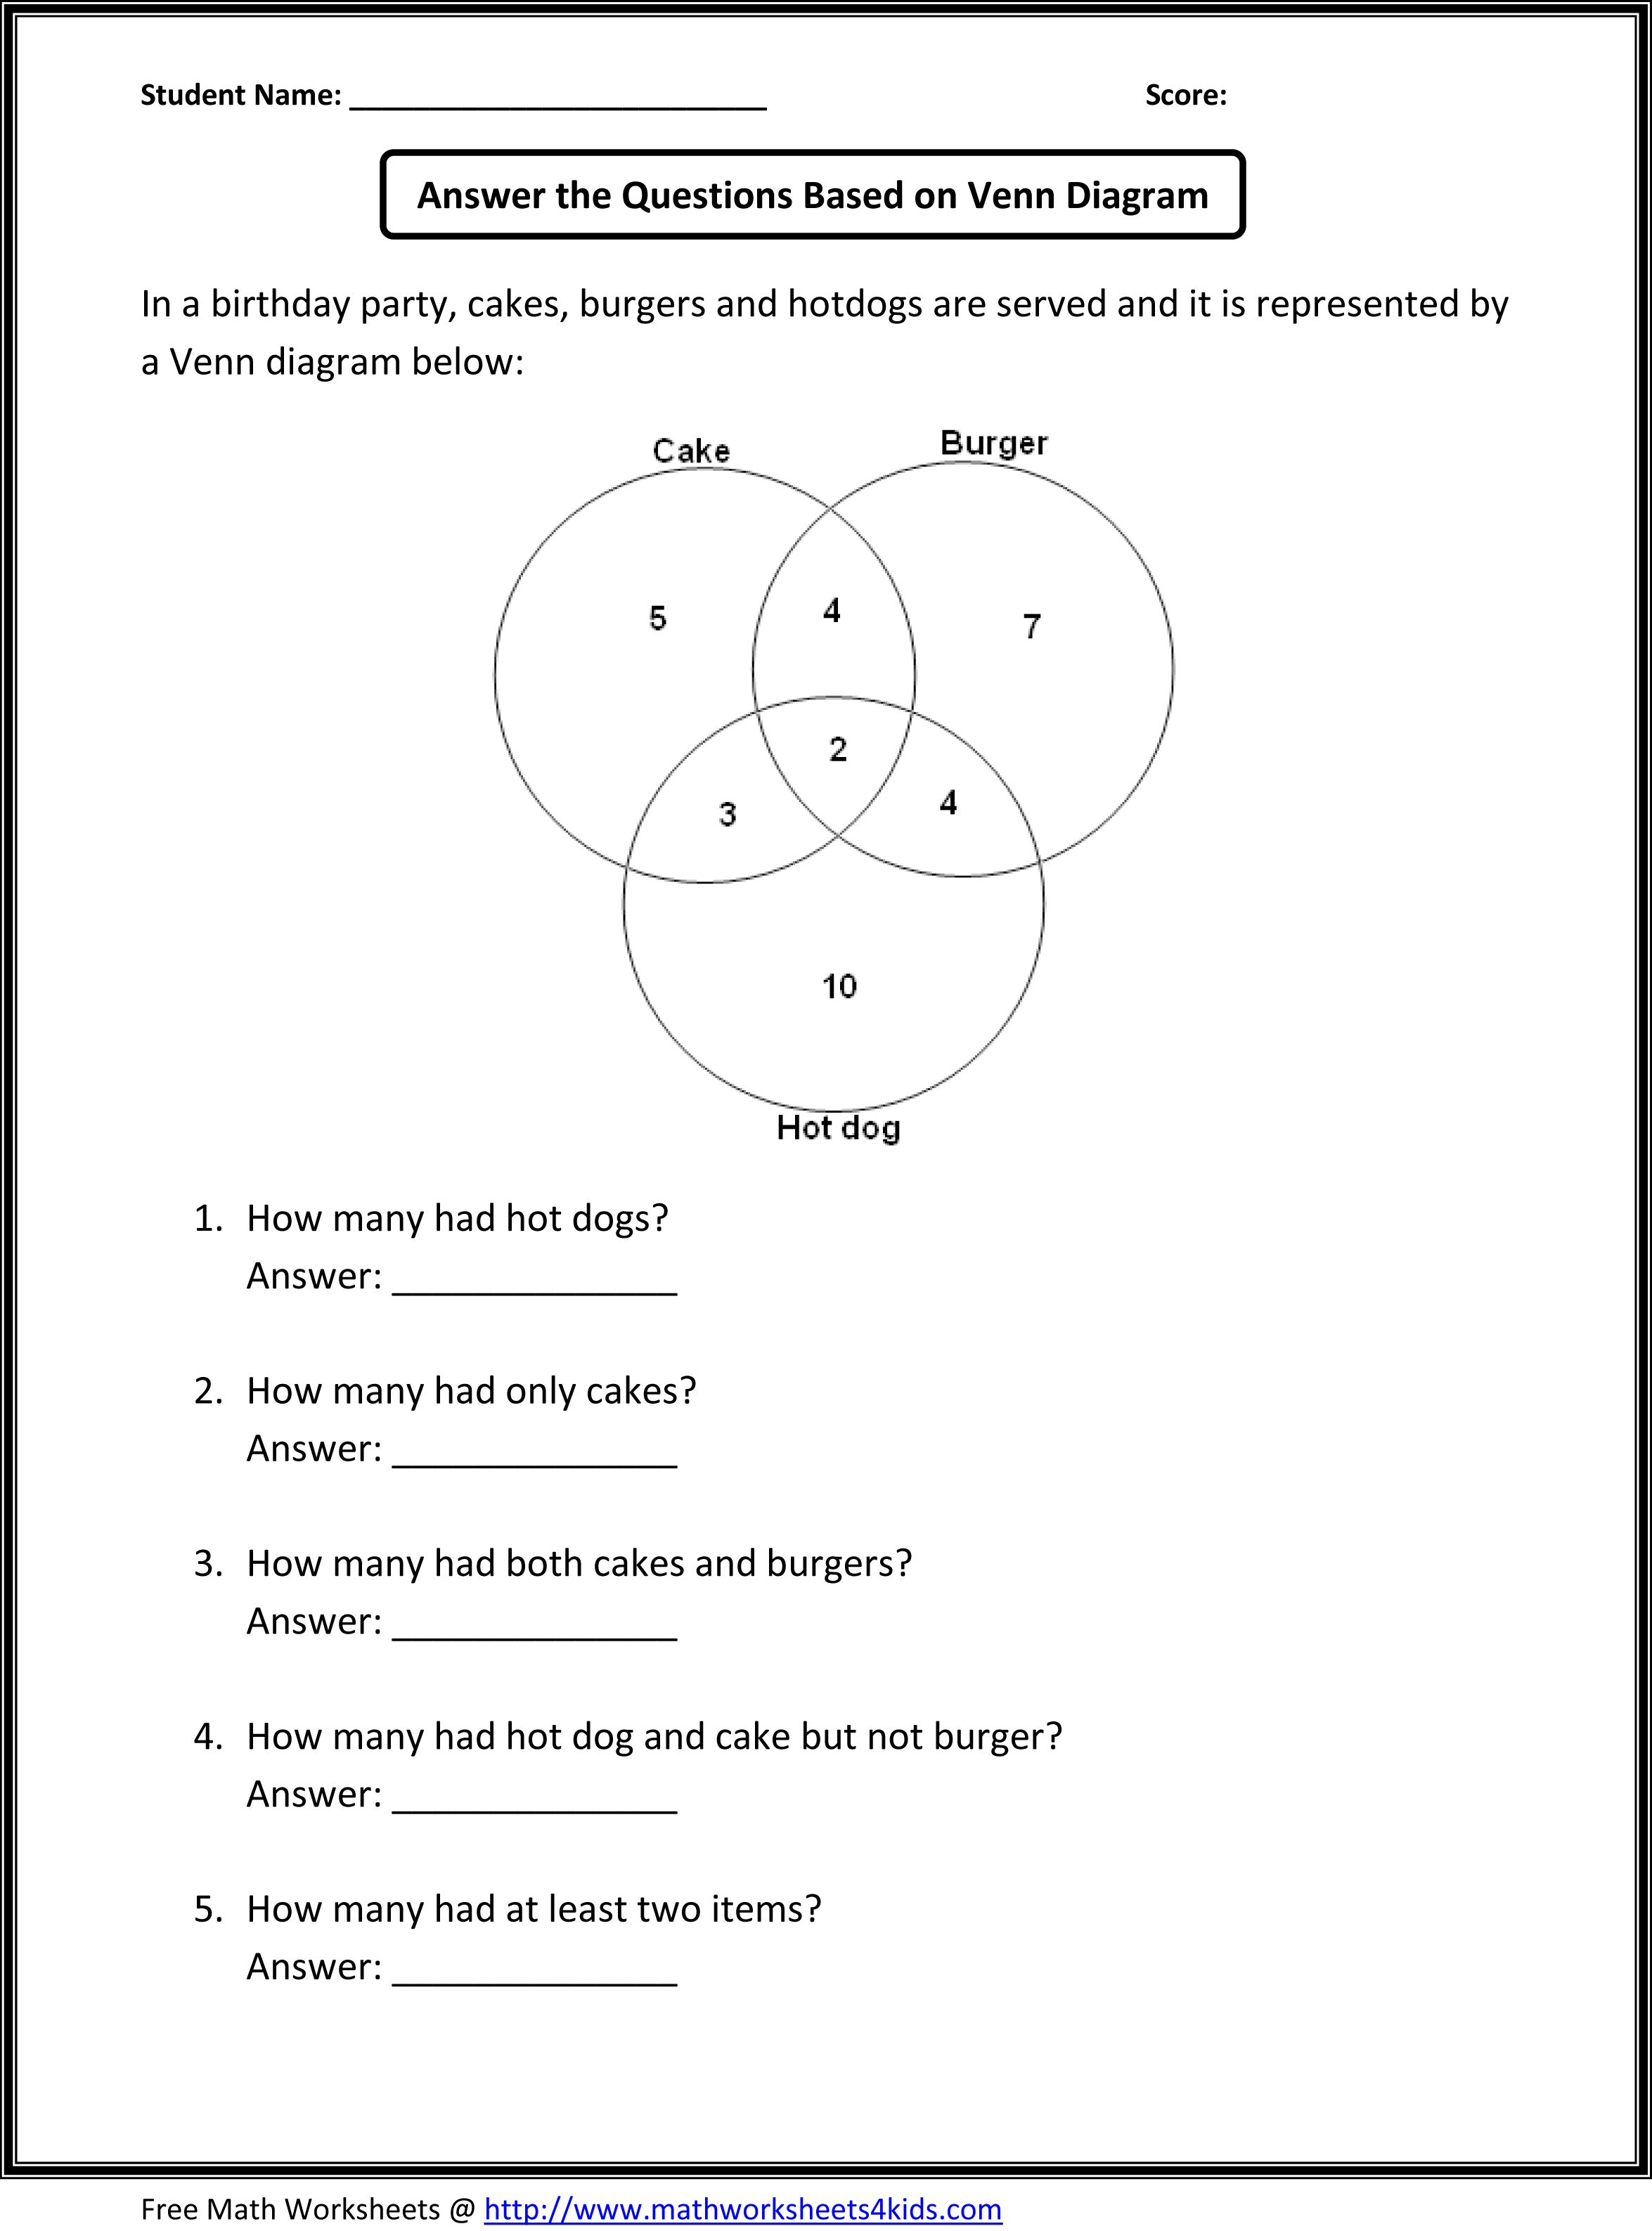 Math Problems 5th Grade Yourhelpfulelf – Math Worksheets for Fifth Grade